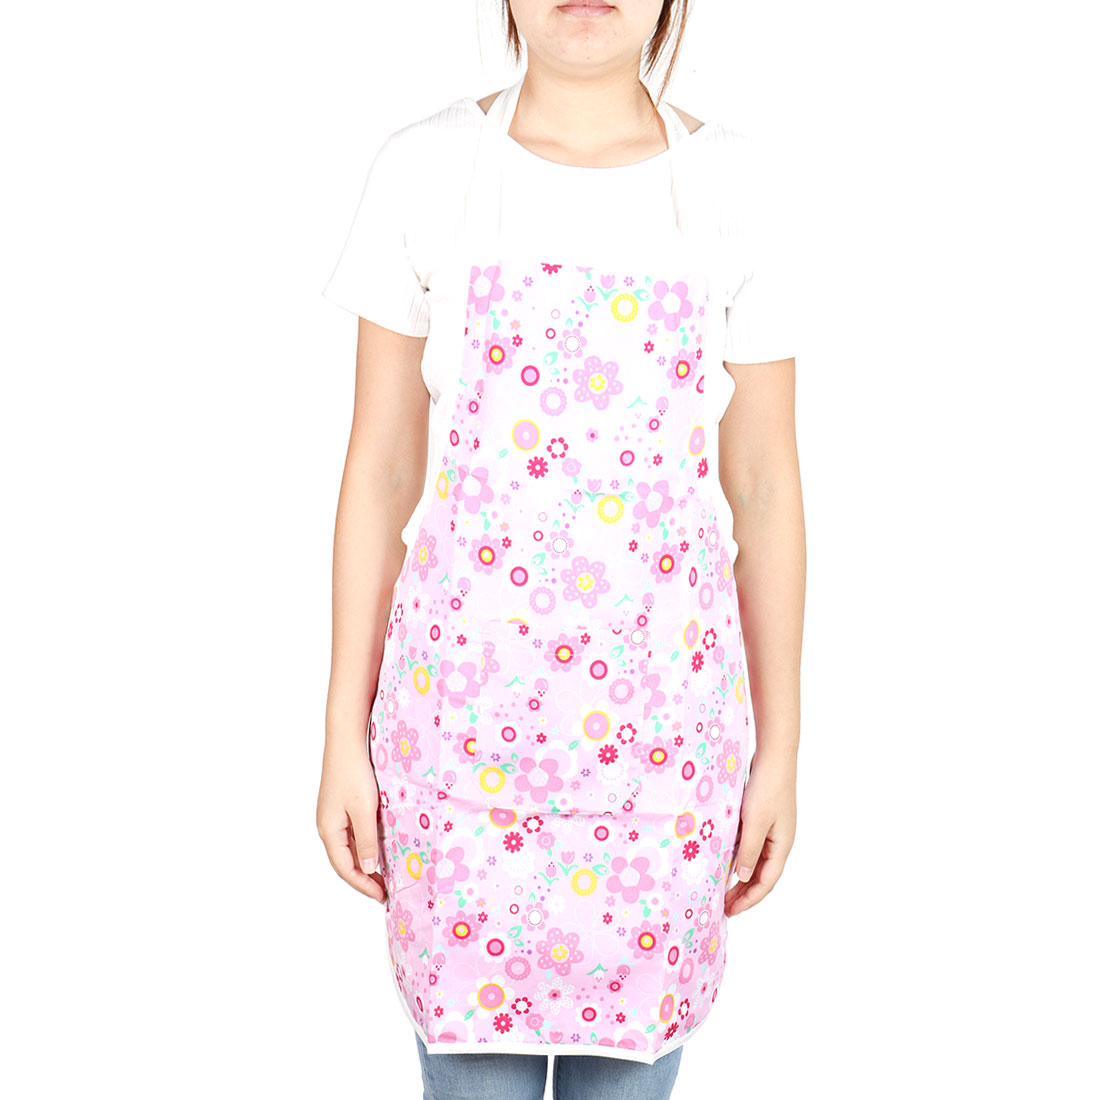 Household Flower Pattern Water Resistant Front Patch Pocket Apron Colorful